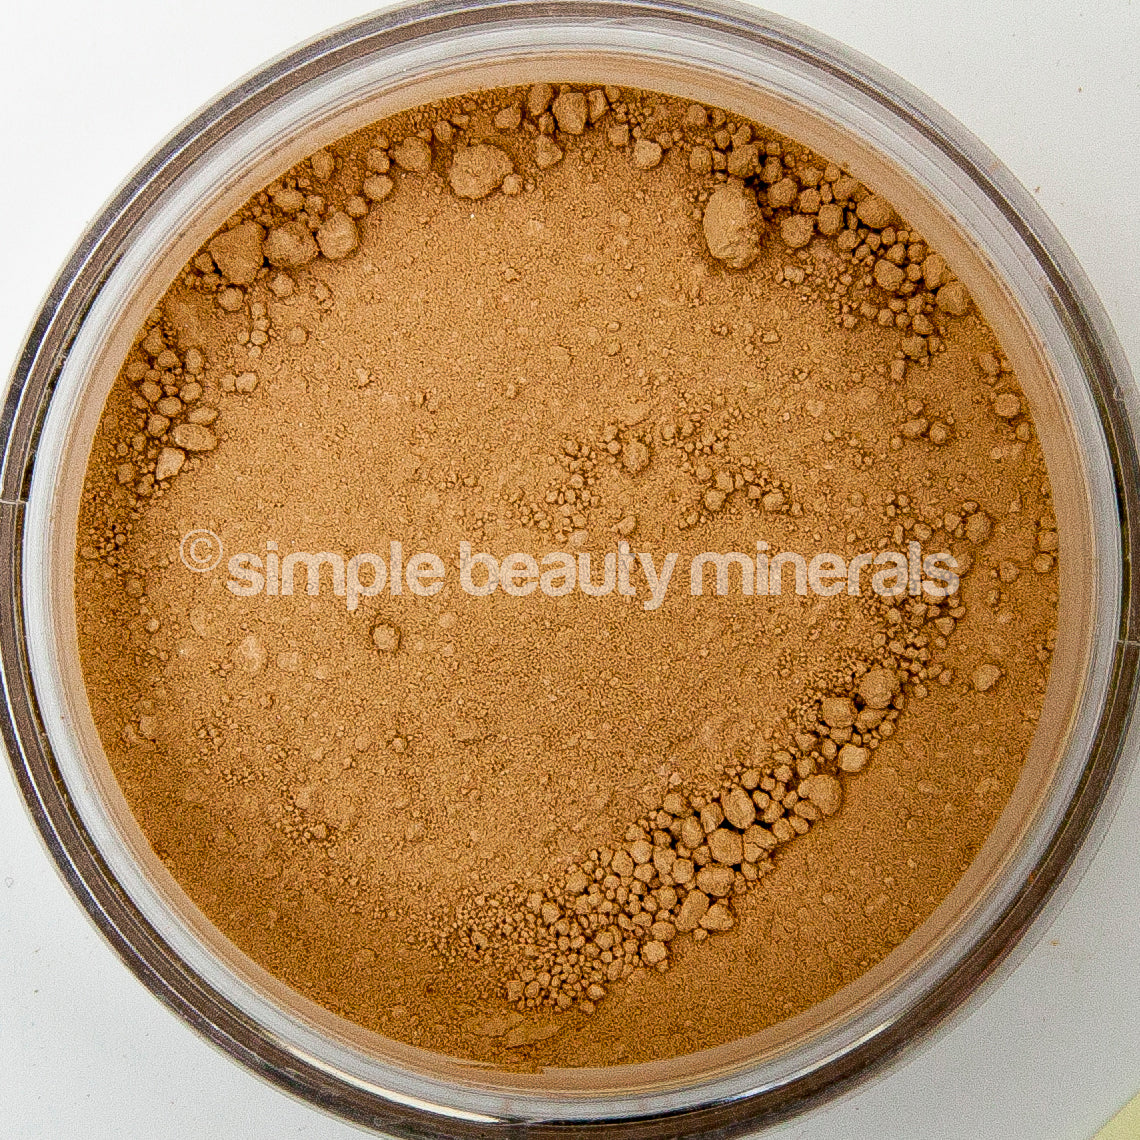 Simple Beauty Minerals - Nicolette Sensy Rich Mineral Foundation